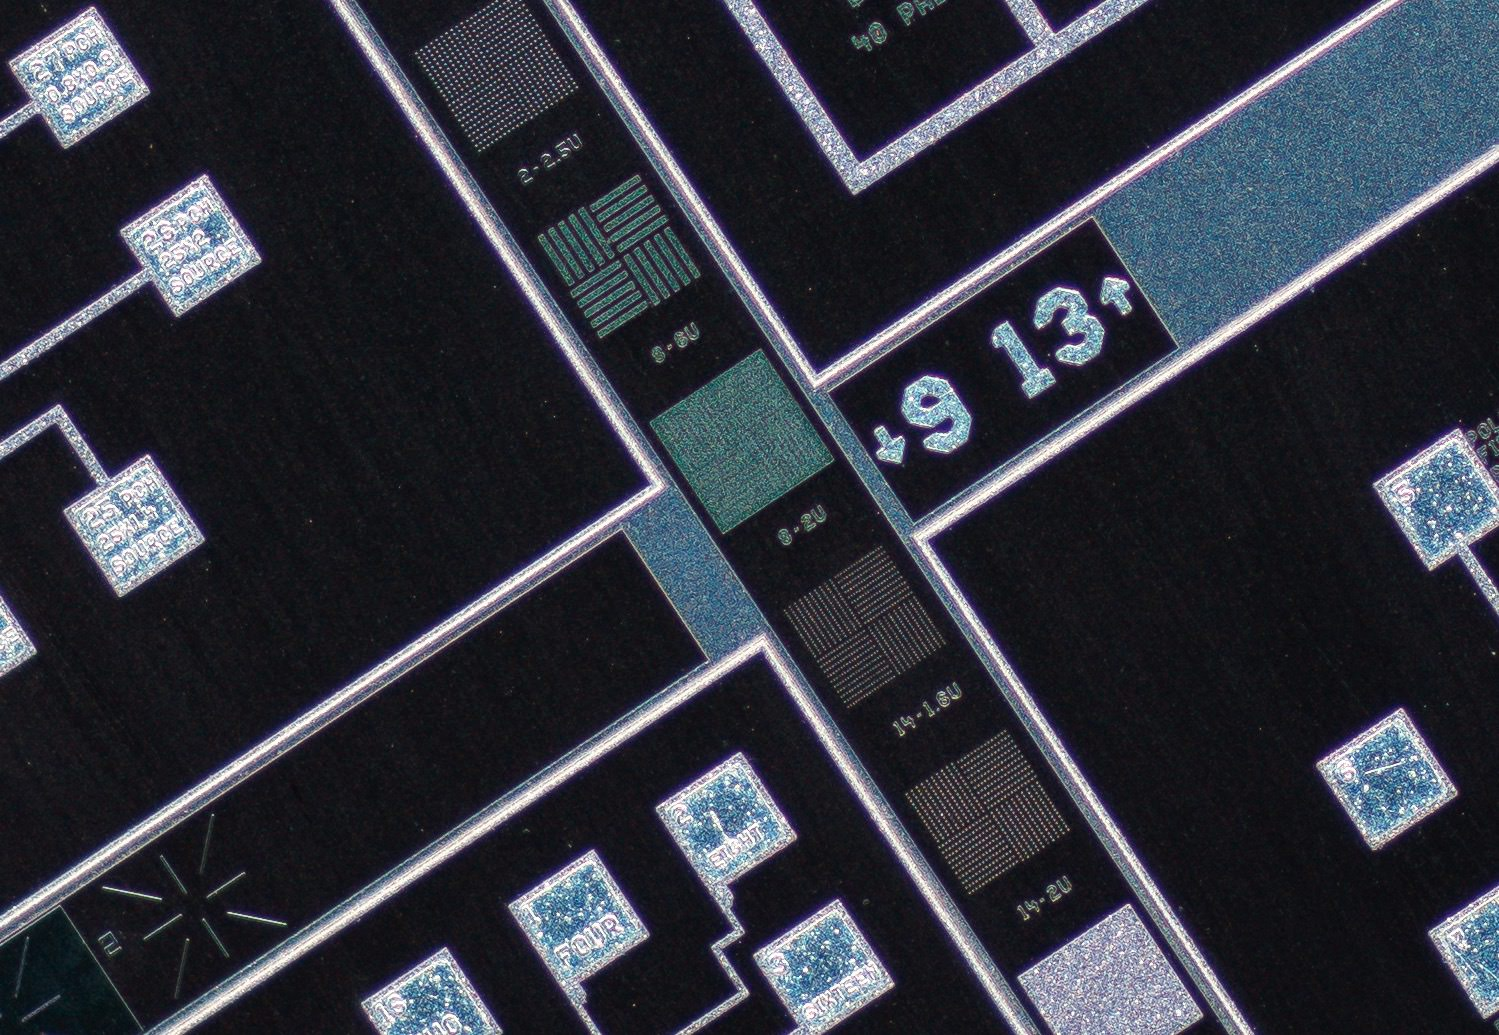 Nikon CFI Super Fluor 4X/0.20 ∞/- Microscope Objective 100% actual pixel view center crop. Clicking on an image will open a larger version.